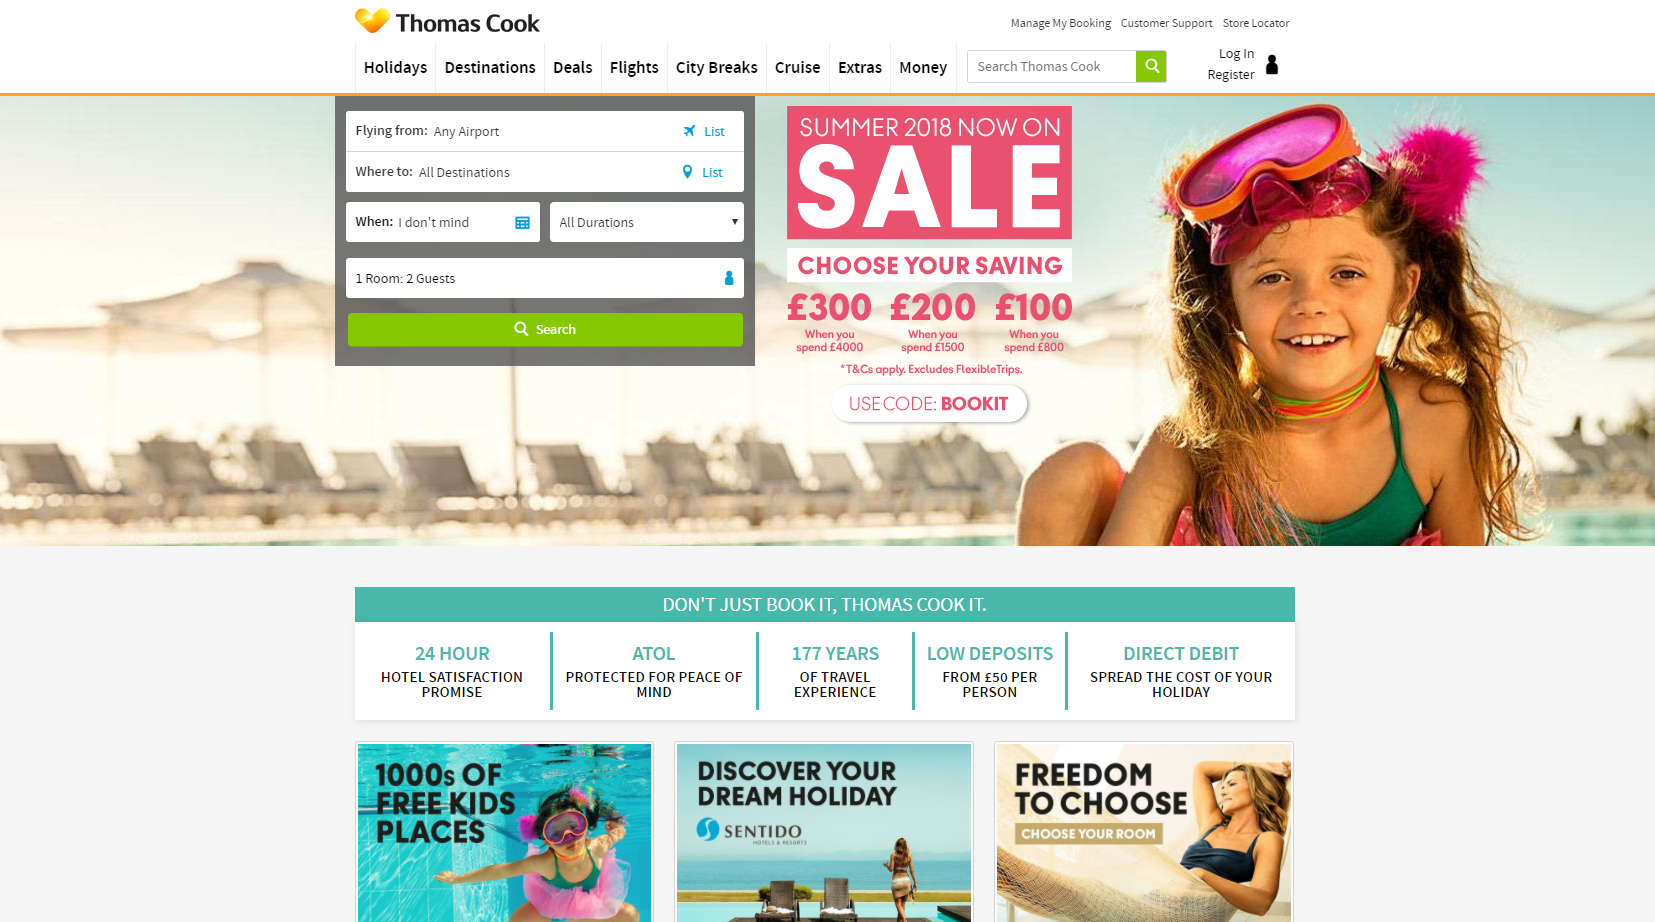 thomas cook value proposition